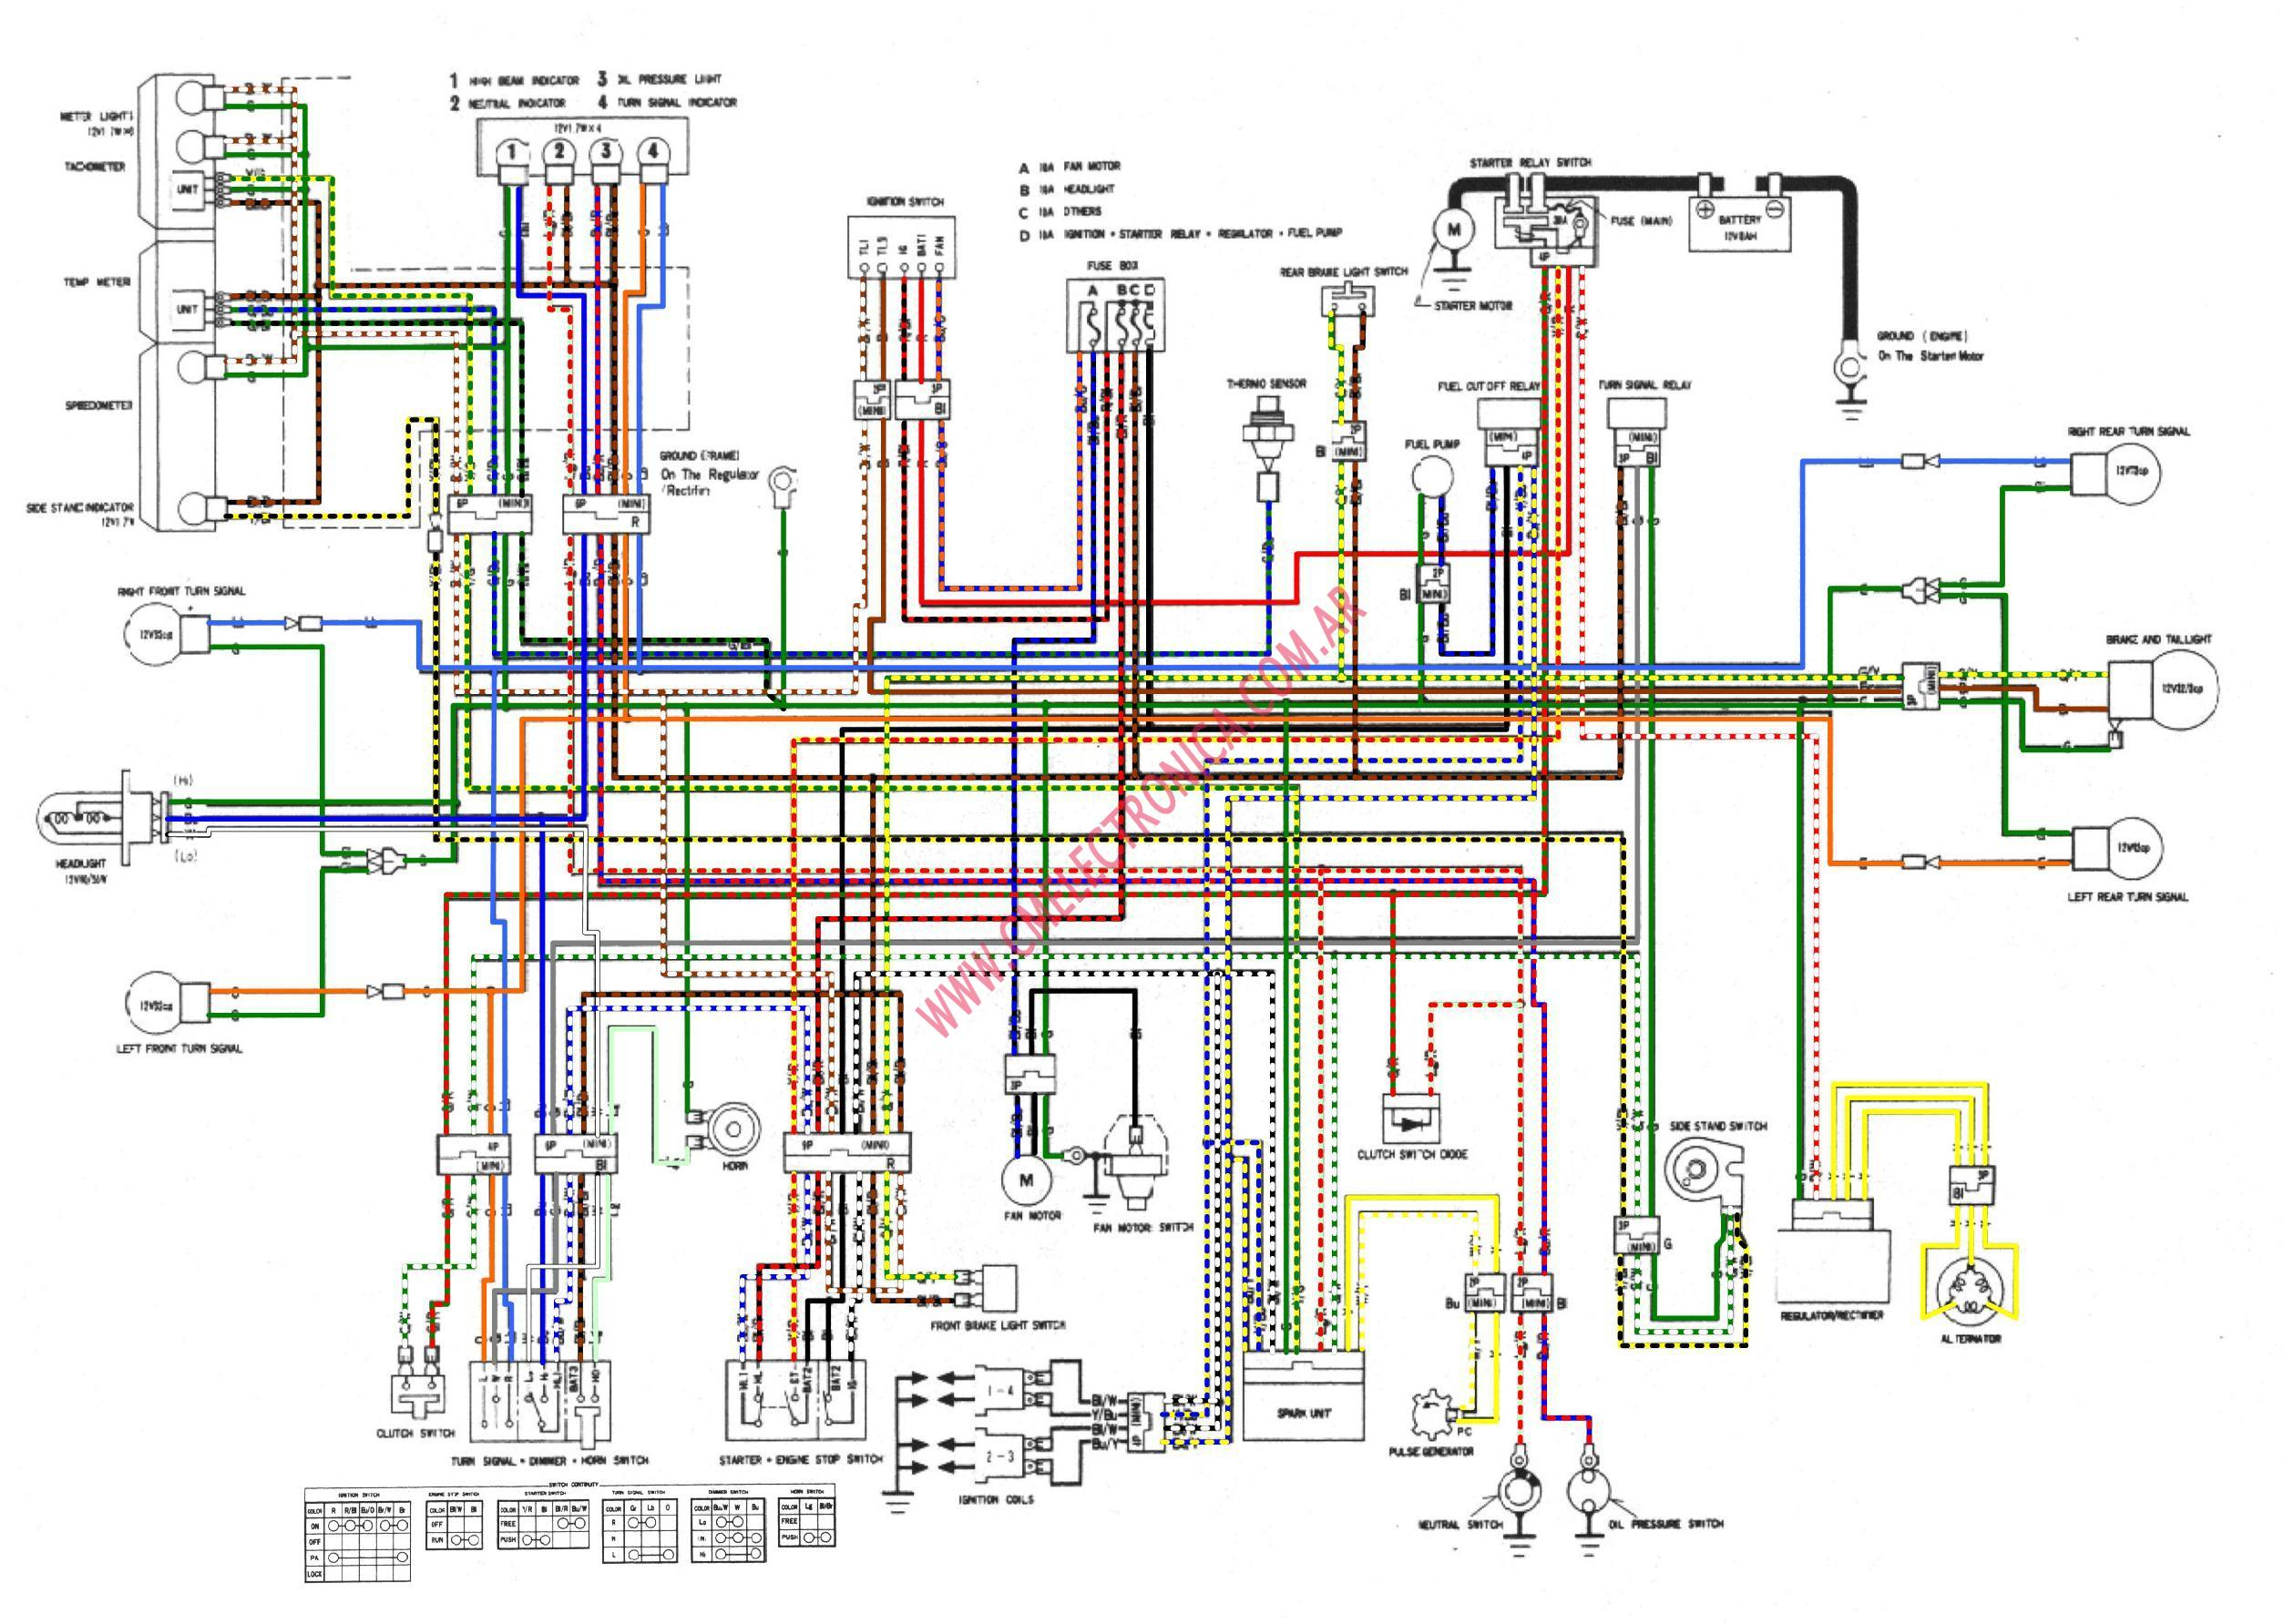 honda-cb1 Yamaha Wiring Diagram on yamaha marine gauge wiring diagram, yamaha maxim wiring diagram, 2002 yamaha wiring diagram, yamaha 70 hp wiring diagram, yamaha outboard control wiring, yamaha outboard control parts, yamaha ignition switch wiring diagram, yamaha xj wiring diagram, yamaha 90 engine, yamaha ttr wiring diagram, ttr 125 wiring diagram, yamaha atv wiring diagram, yamaha 90 fuel tank, yamaha 80 wiring diagram, yamaha out board motors, yamaha digital gauge wiring, johnson wiring harness diagram, outboard wiring diagram, yamaha fuel gauge wiring diagram, mercury wiring harness diagram,